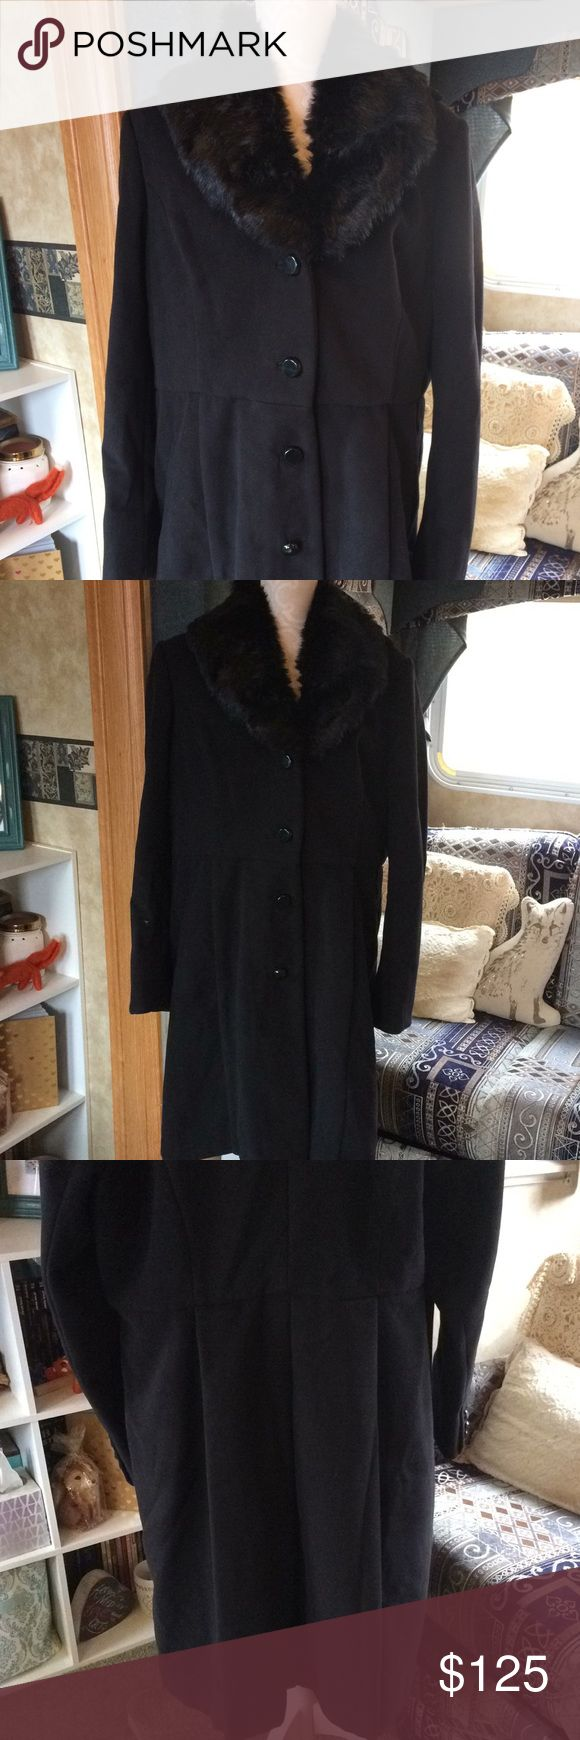 NWOT Dennis by Dennis Basso Long Black Peacoat XL New without tags. Faux fur removable collar. Back splits on bottom are still tacked. A few buttons are loose and will need to be resewn. I do not trade or hold items. Reasonable offers will be considered. Dennis by Dennis Basso Jackets & Coats Pea Coats